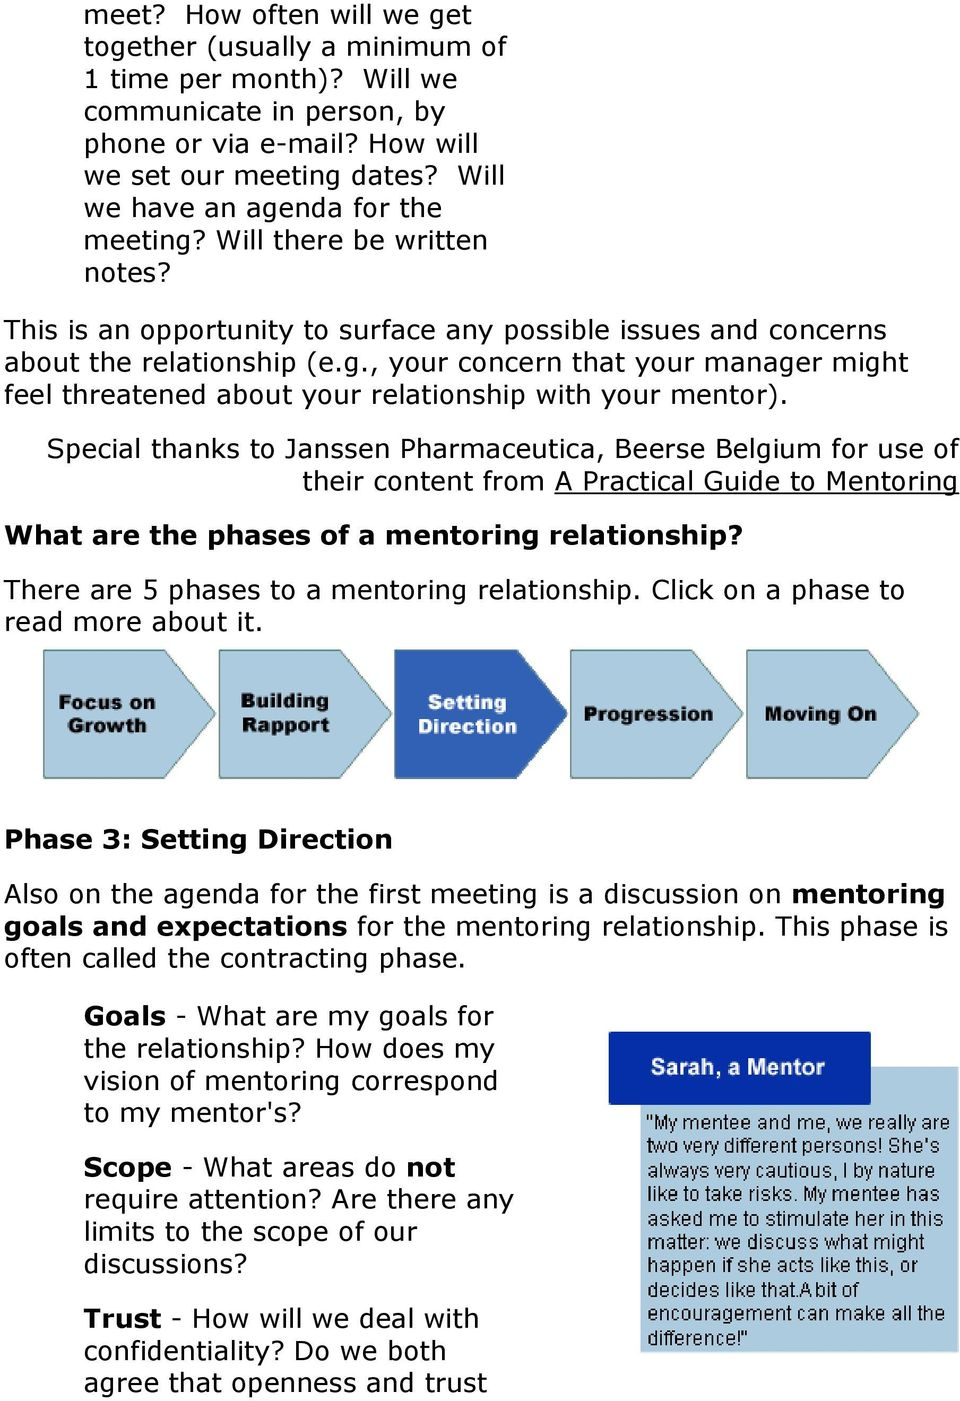 Special thanks to Janssen Pharmaceutica, Beerse Belgium for use of their content from A Practical Guide to Mentoring What are the phases of a mentoring relationship?